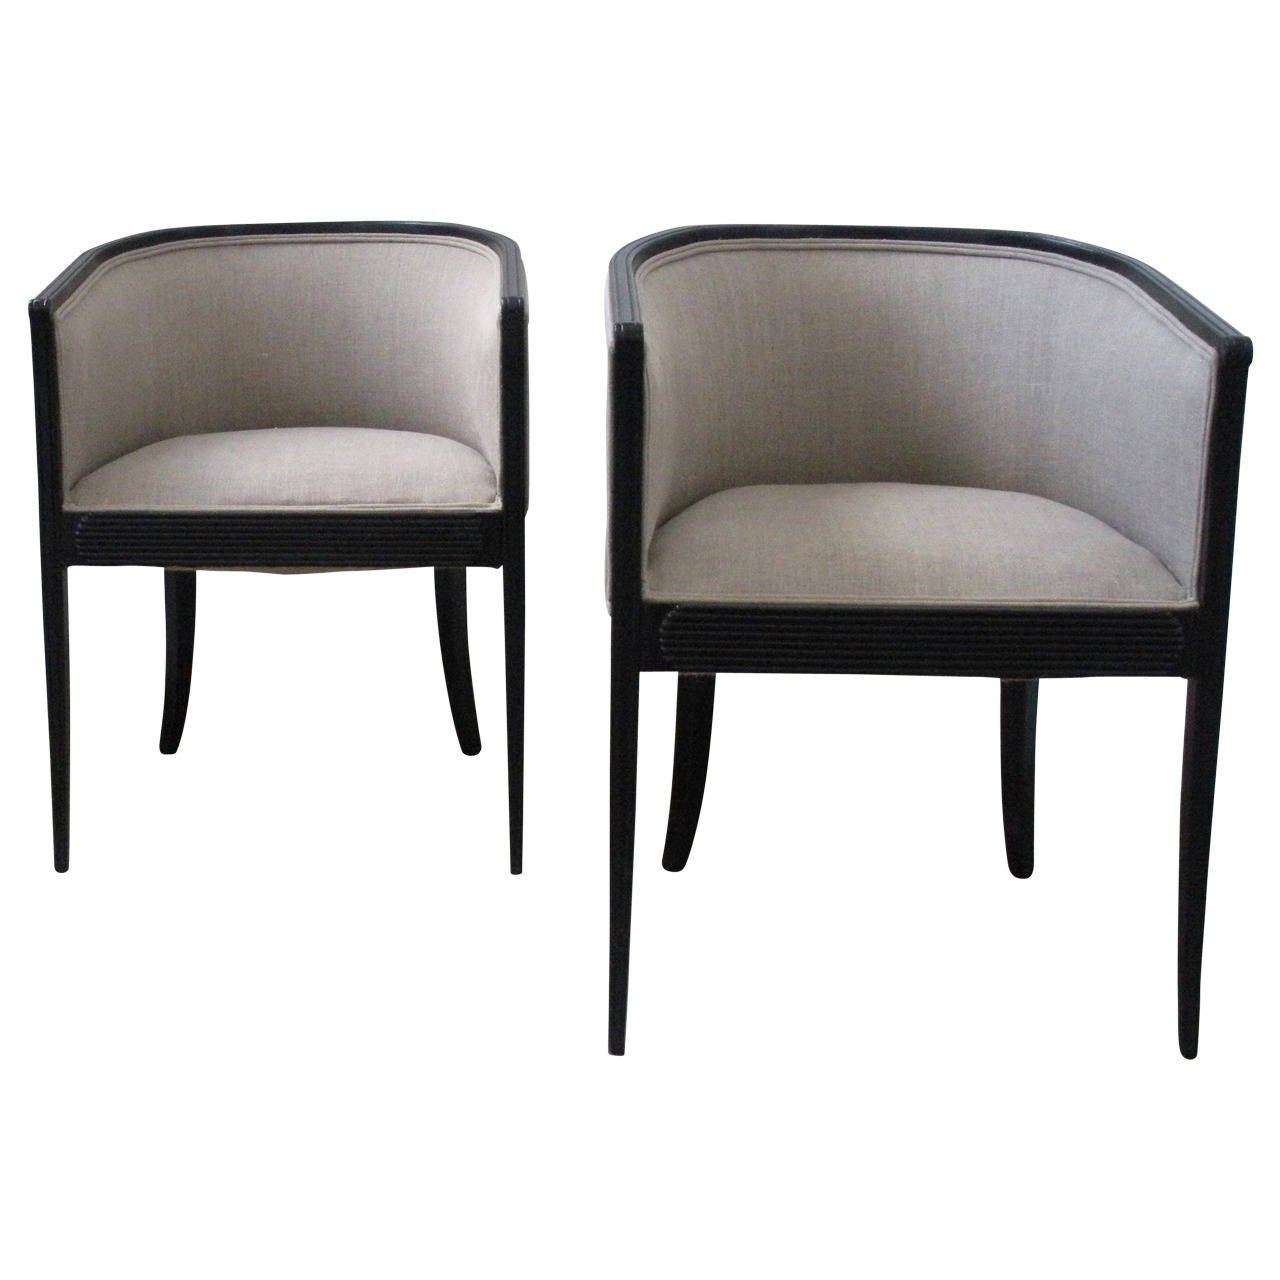 Beau Pair Of French Art Deco Tub Chairs For Sale